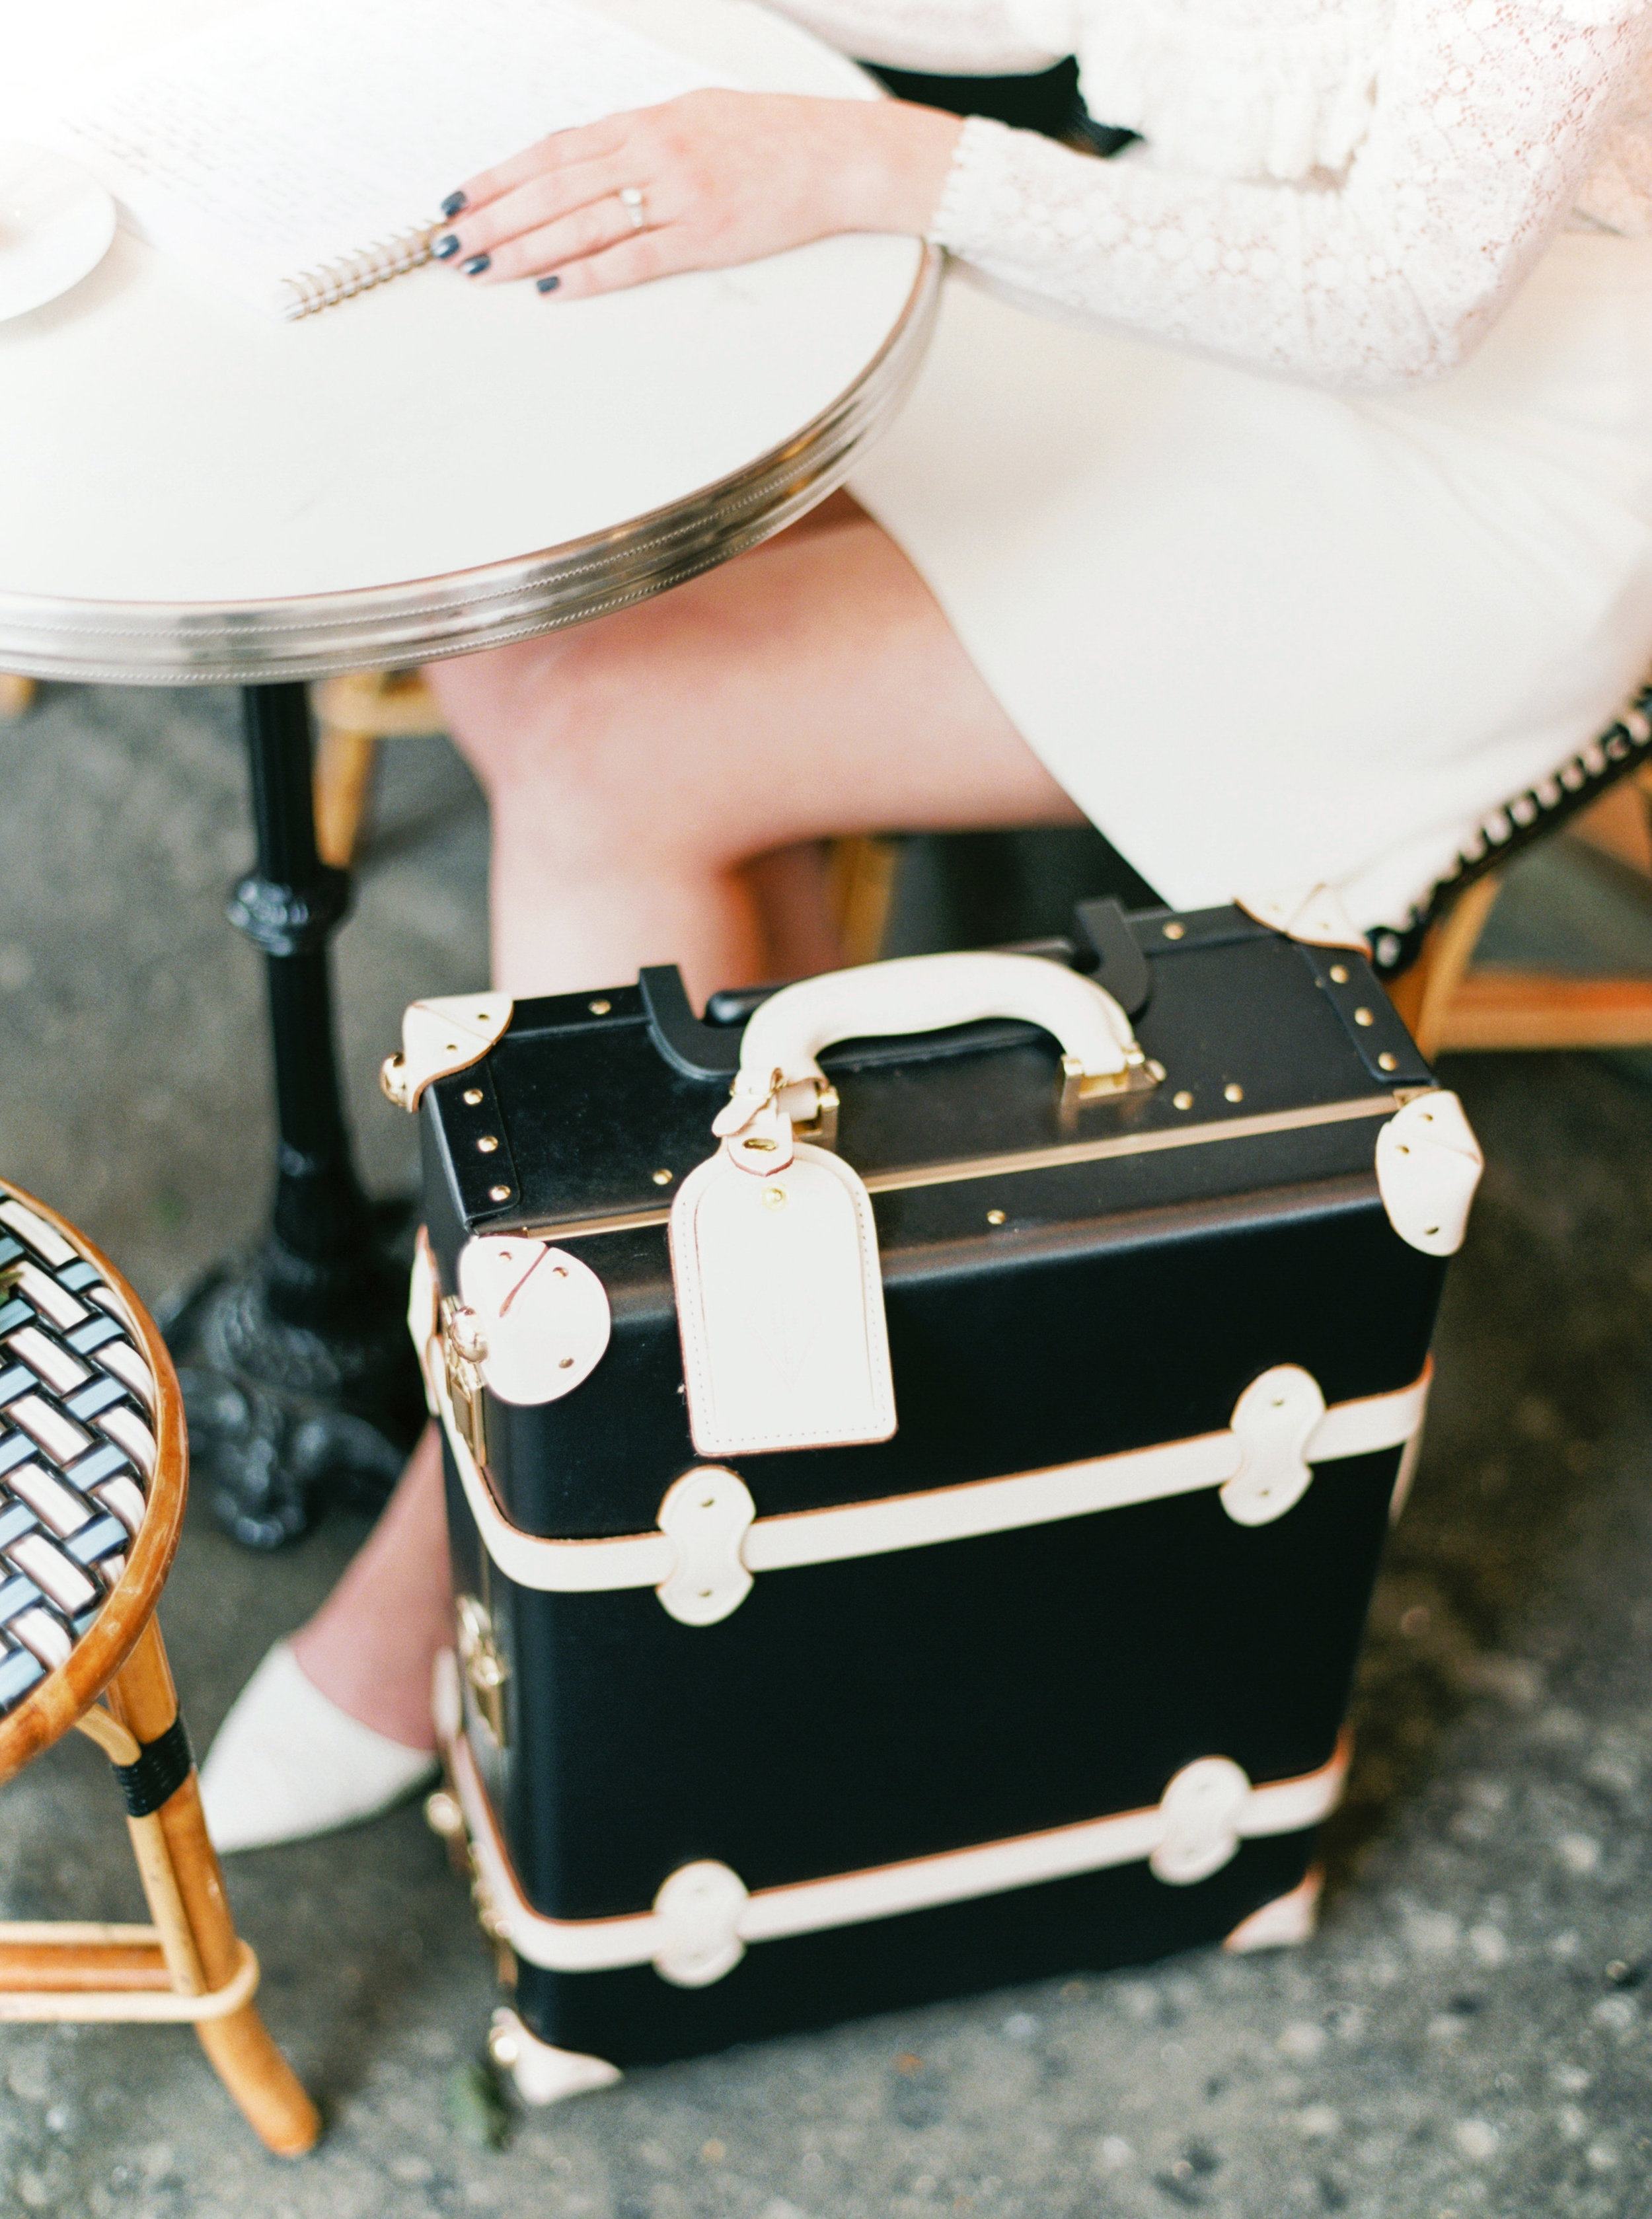 The Best Luggage for Traveling in Style | Chic suitcases for fashionable travel, with cute luggage sets and the prettiest suitcase options online. | Because luggage with personality is always more fun than another black roller bag!